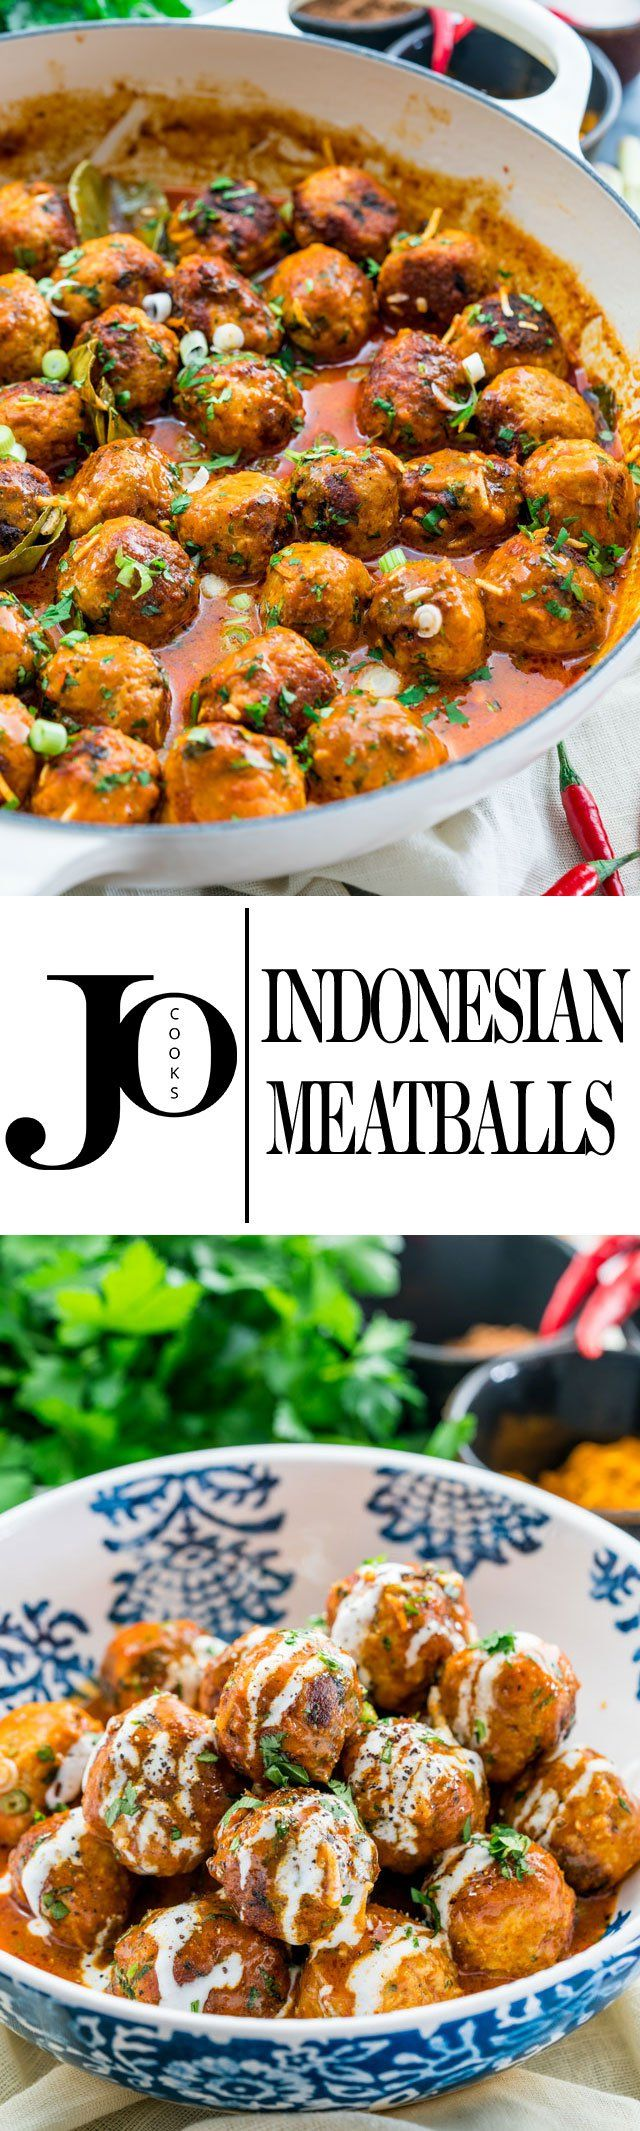 These spicy chicken Indonesian meatballs come complete in a creamy coconut curry sauce that really is quite easy to prepare and are out of bounds delicious!